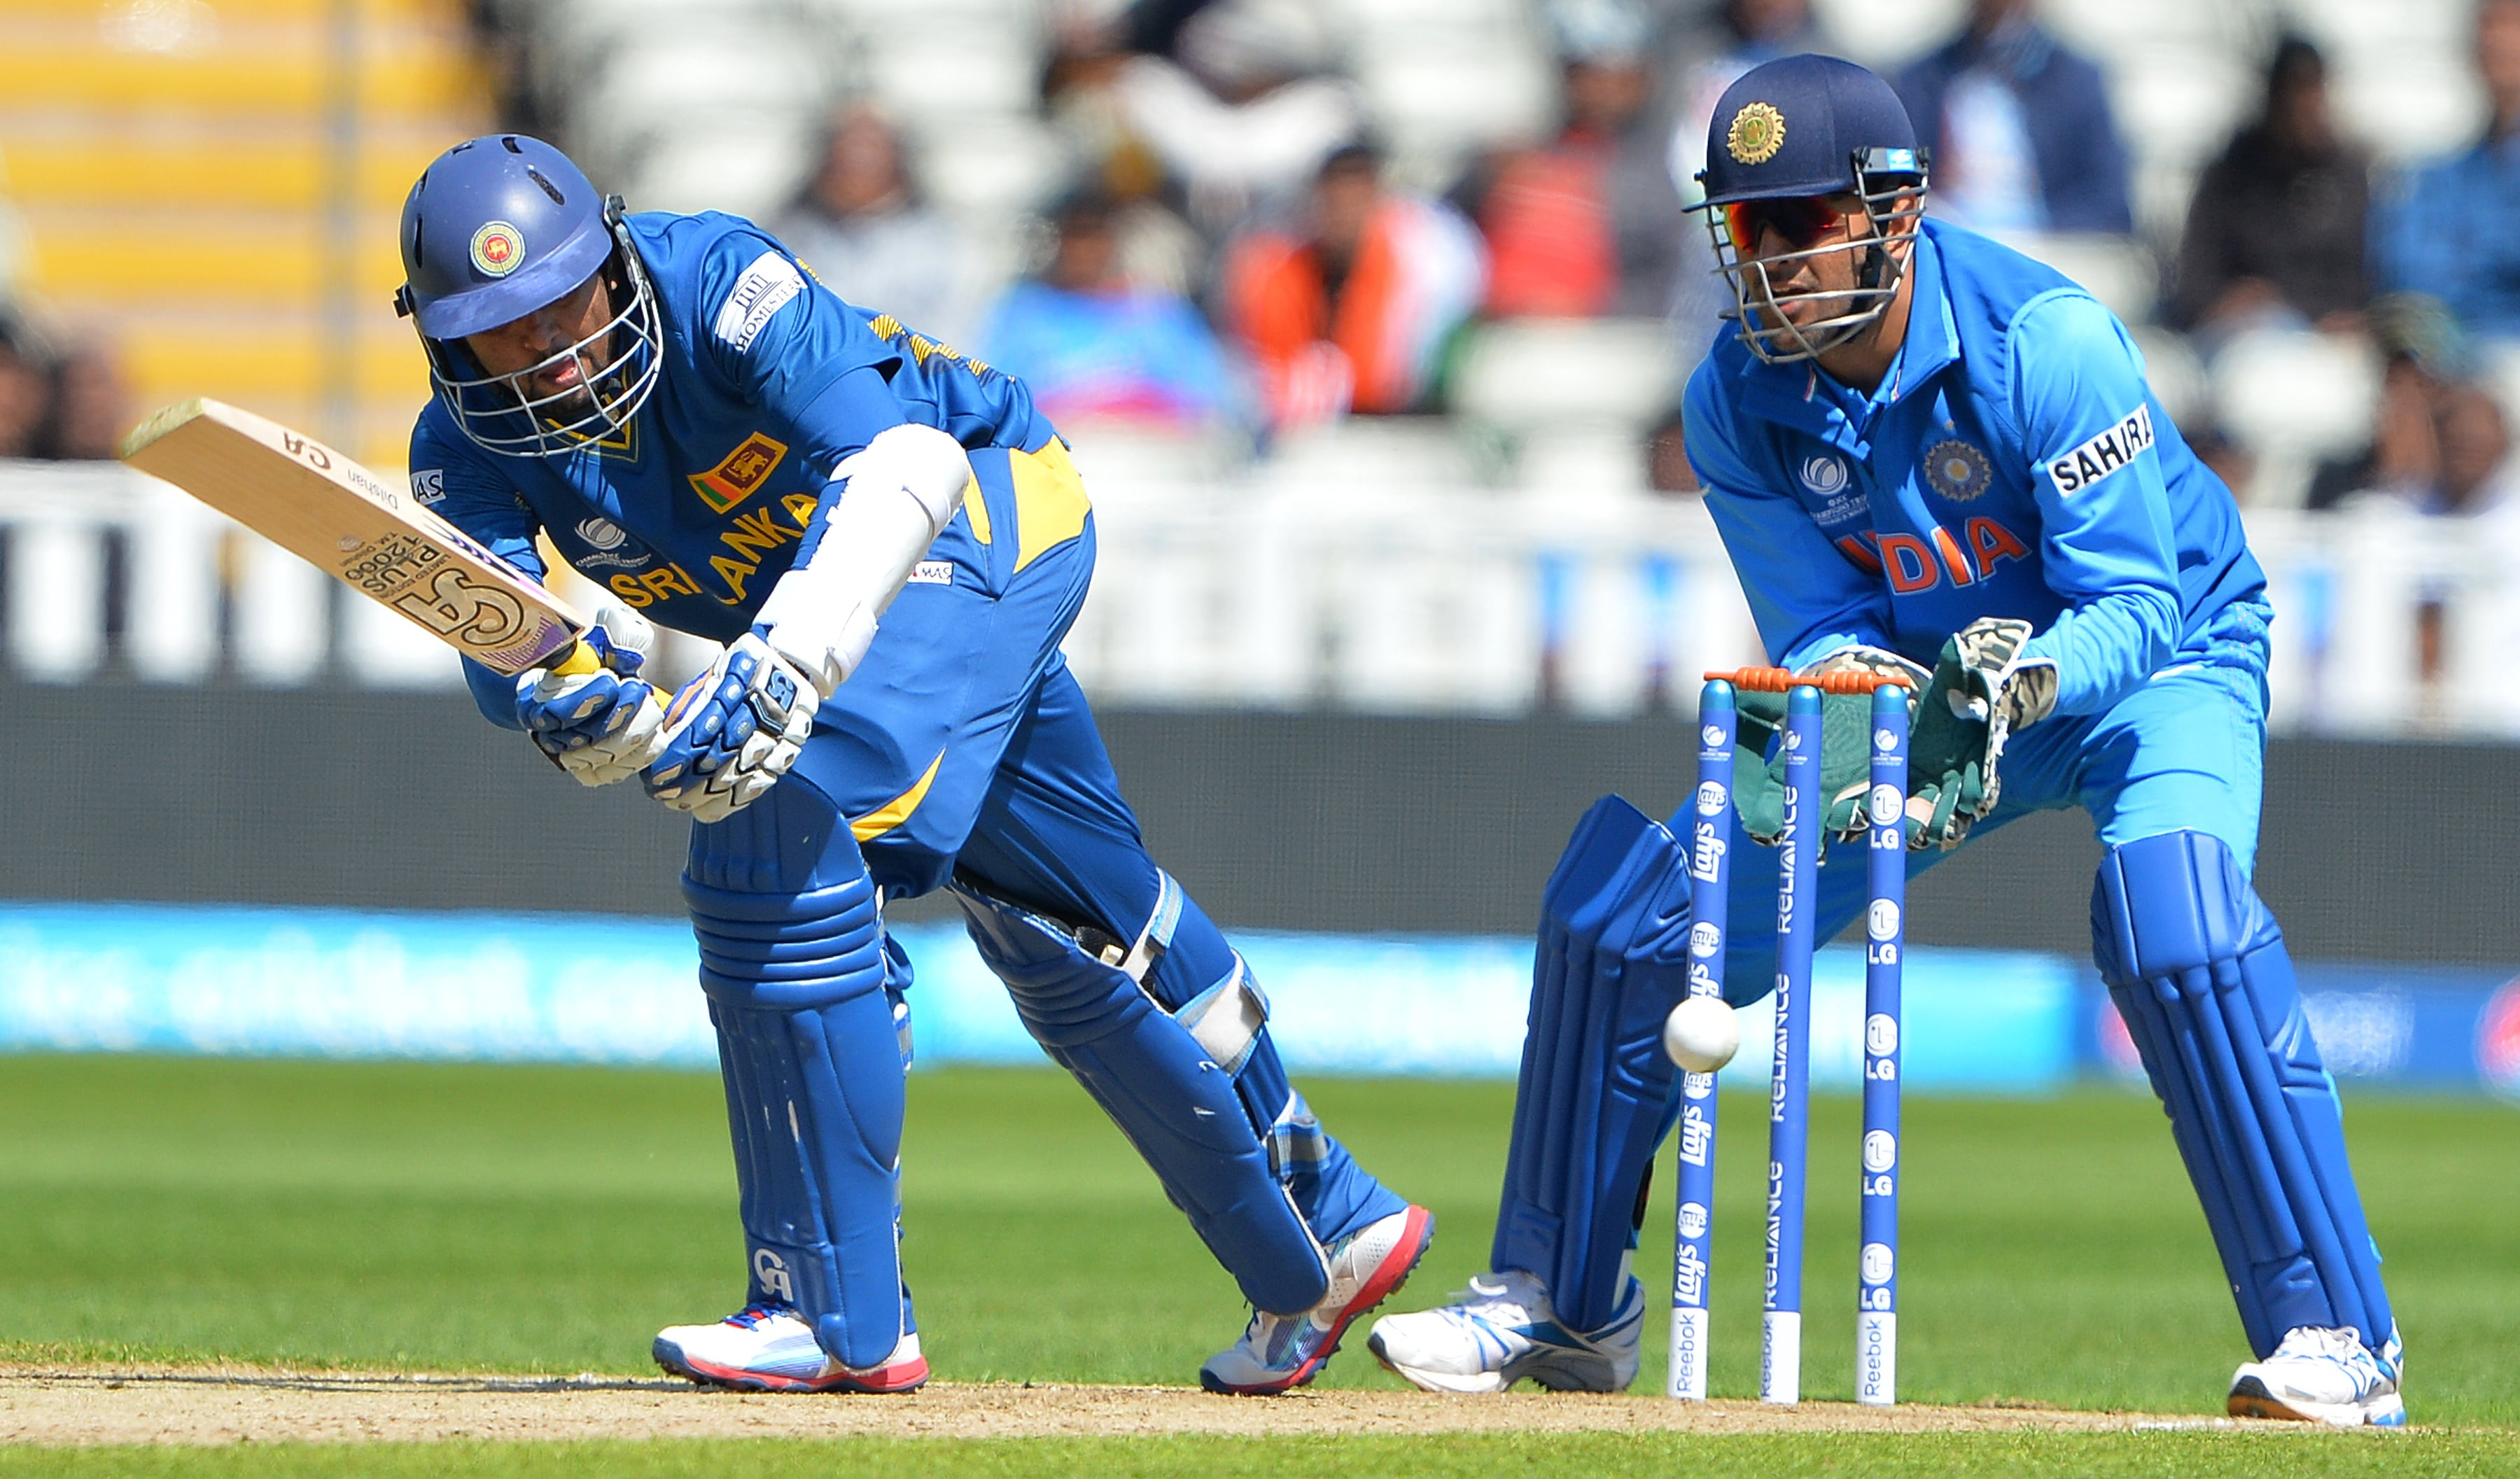 Tillakratne Dilshan found good form going into the ICC Champions Trophy as he top scored for Sri Lanka with 84 from 78 balls. Dilshan hit nine fours and a six.